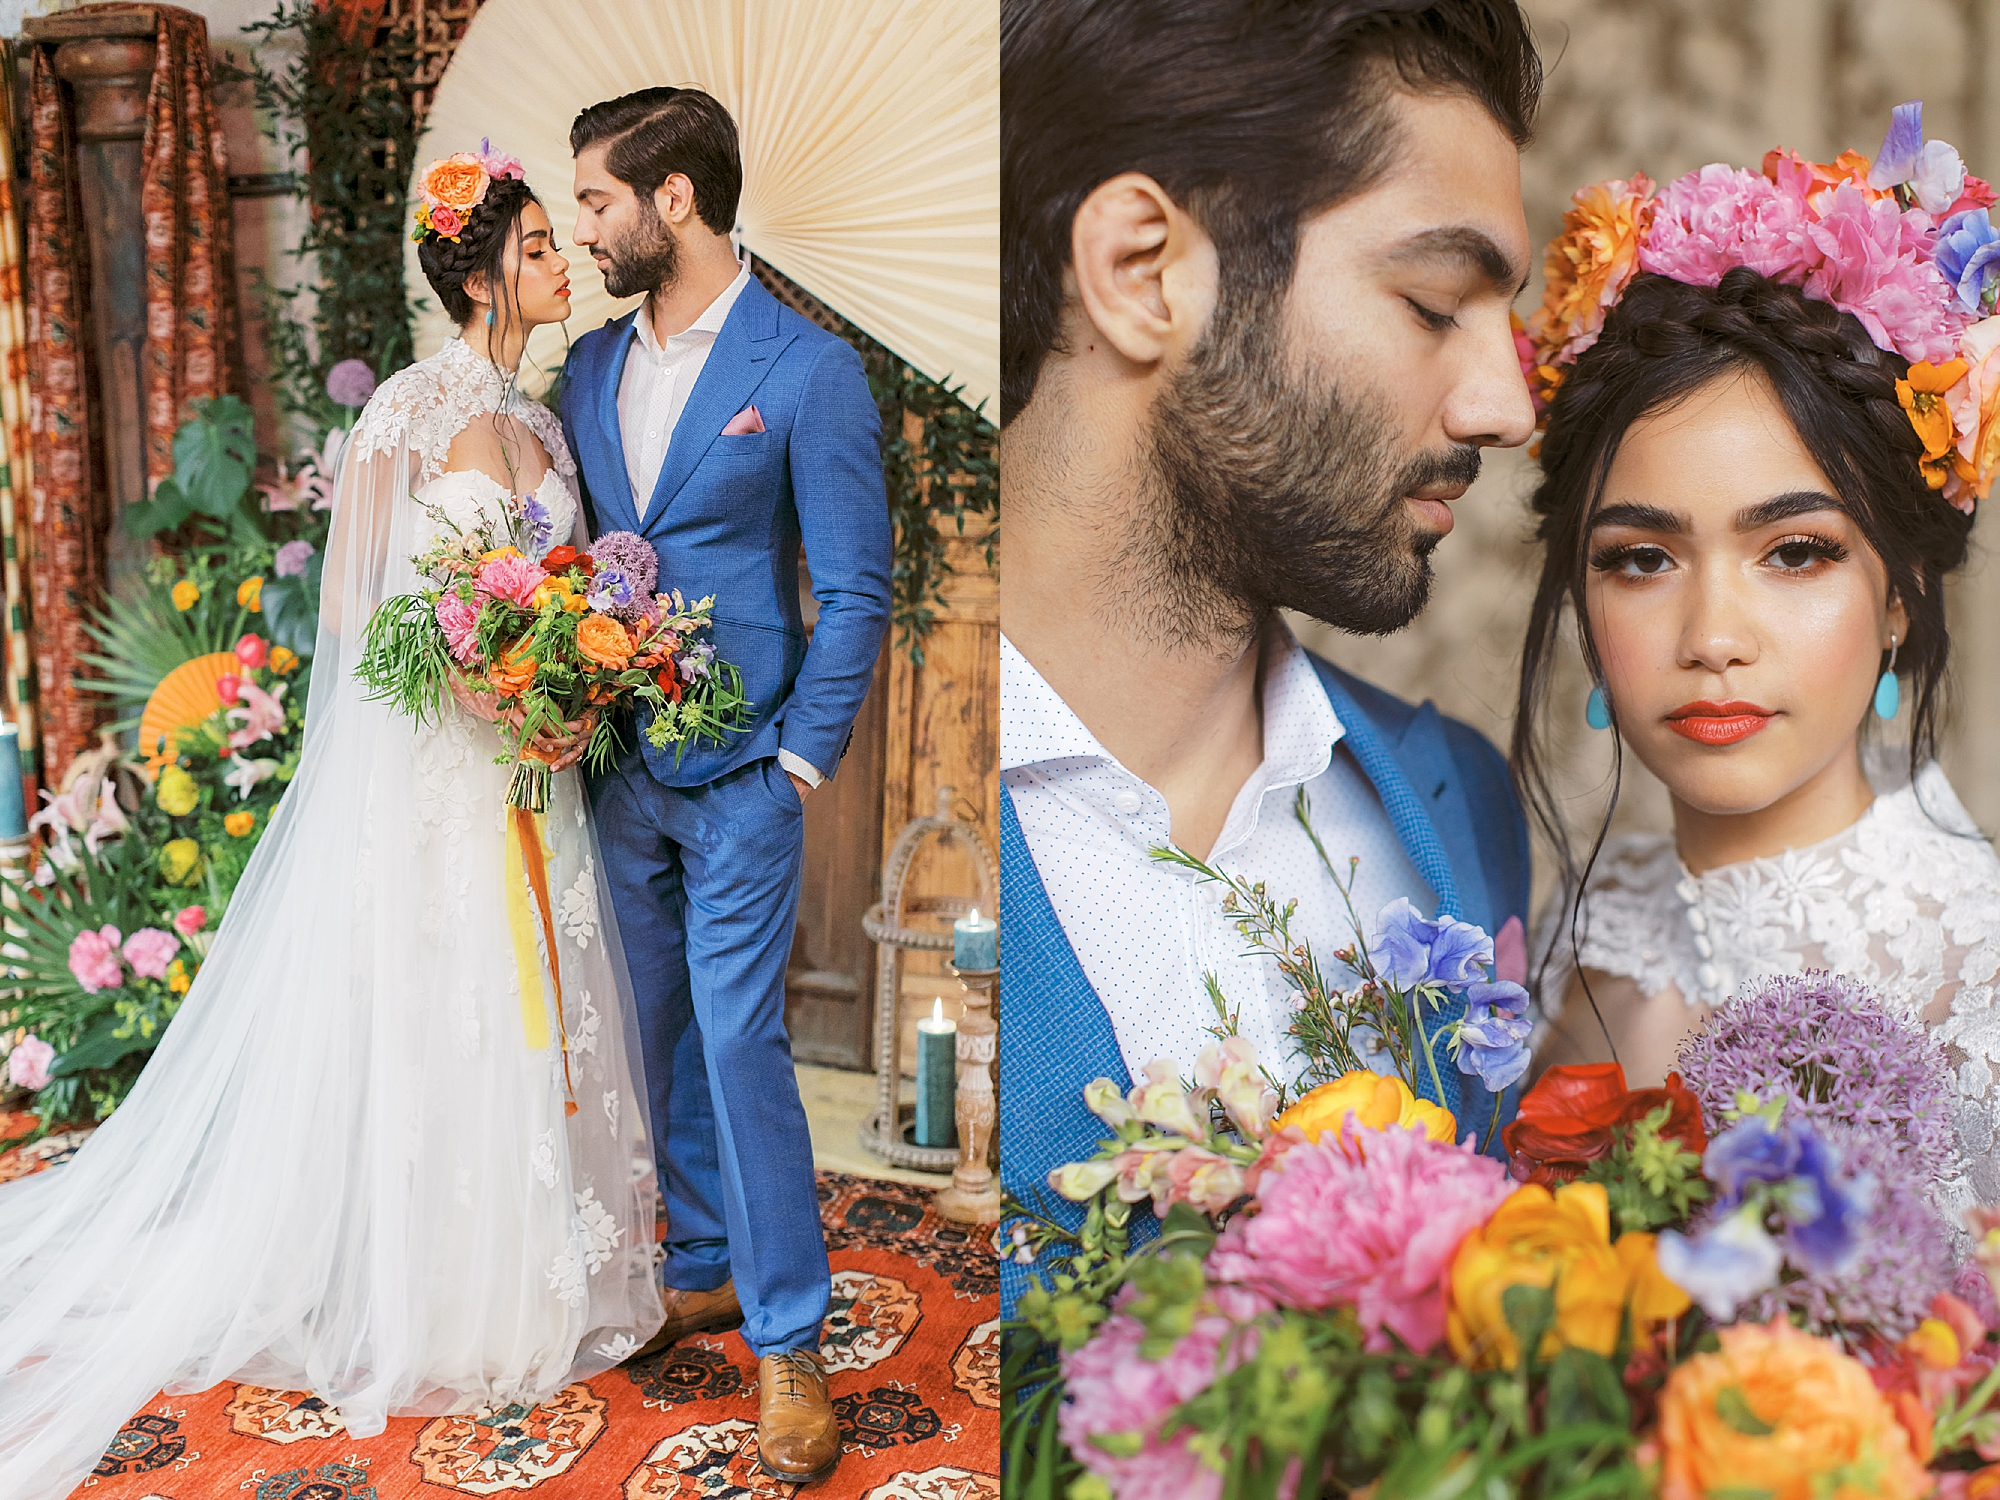 Vibrant and Colorful Frida Kahlo Inspired Wedding Photography by Magdalena Studios 0036